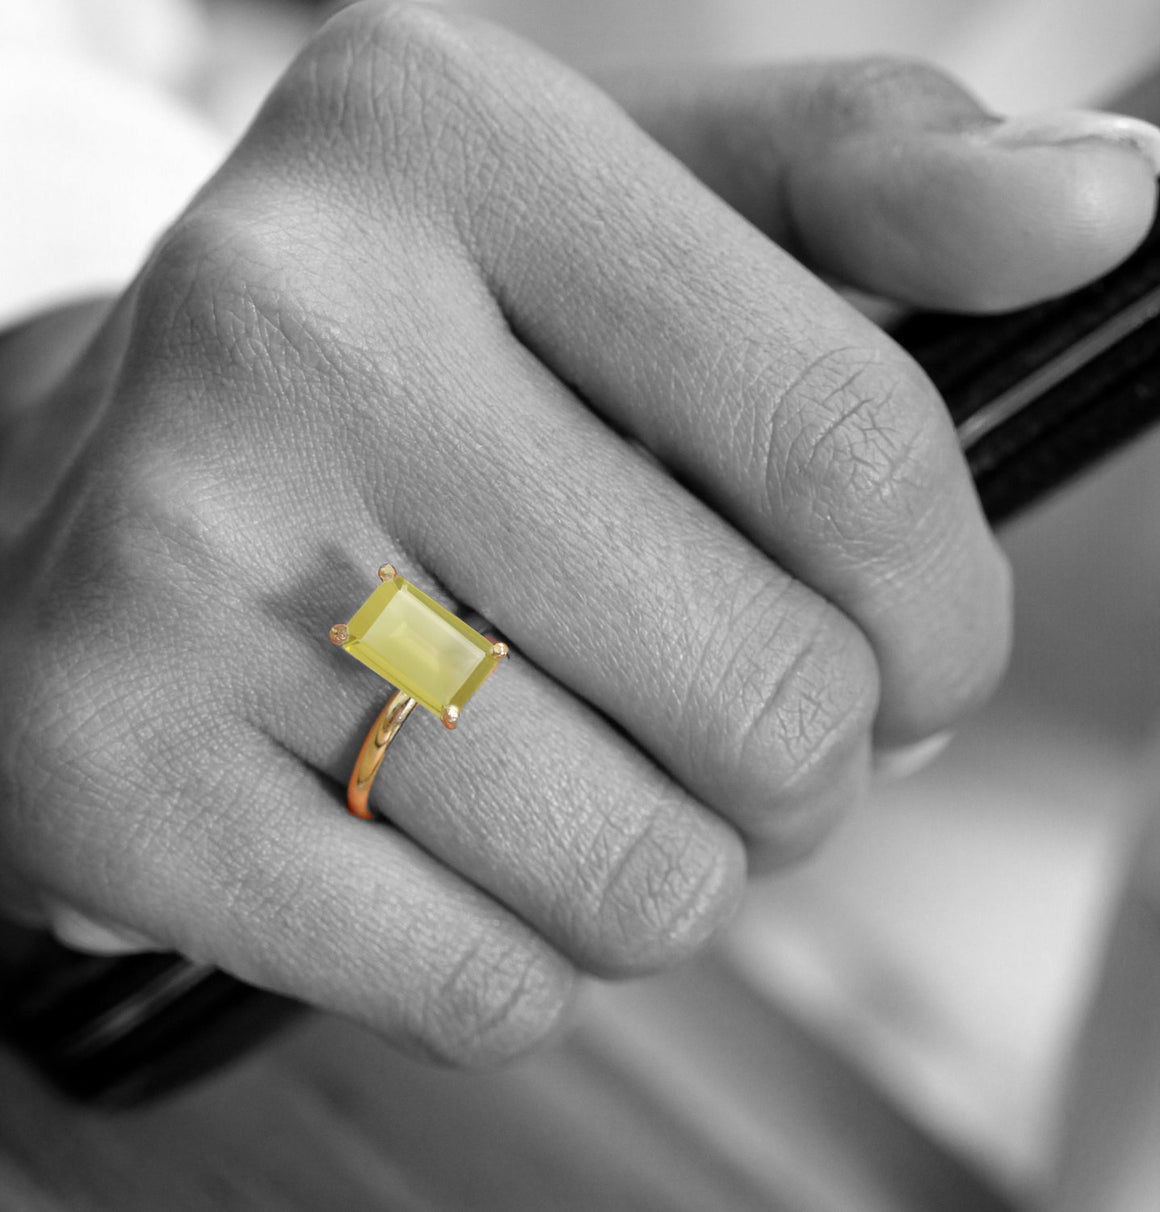 Lemon quartz ring,reflective ring,yellow quartz ring,gold ring,rectangle ring,stacking ring,long ring,thin band,stack ring